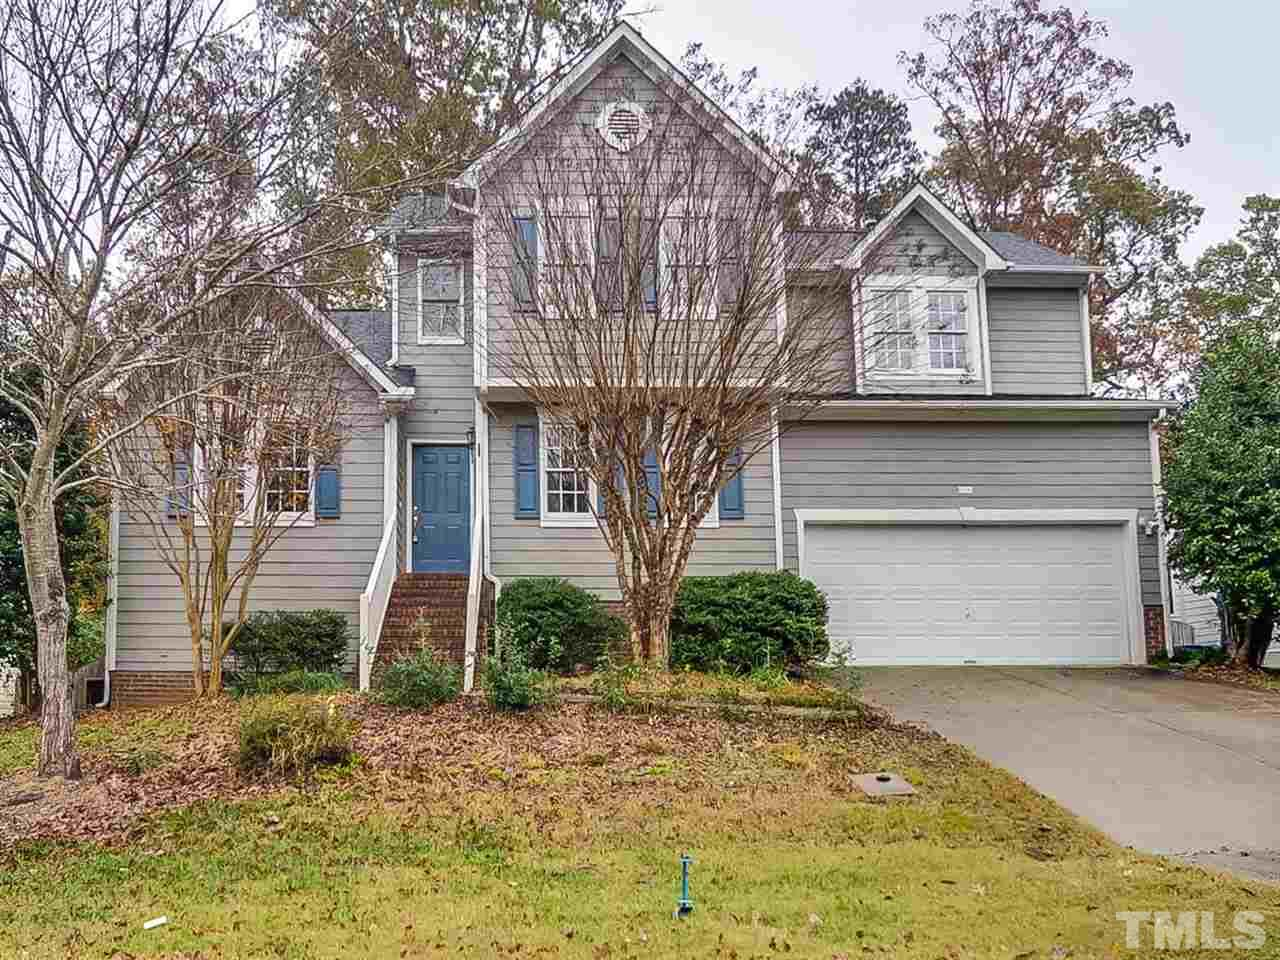 Picture of move-in ready property at Chancellors Ridge, Durham, NC